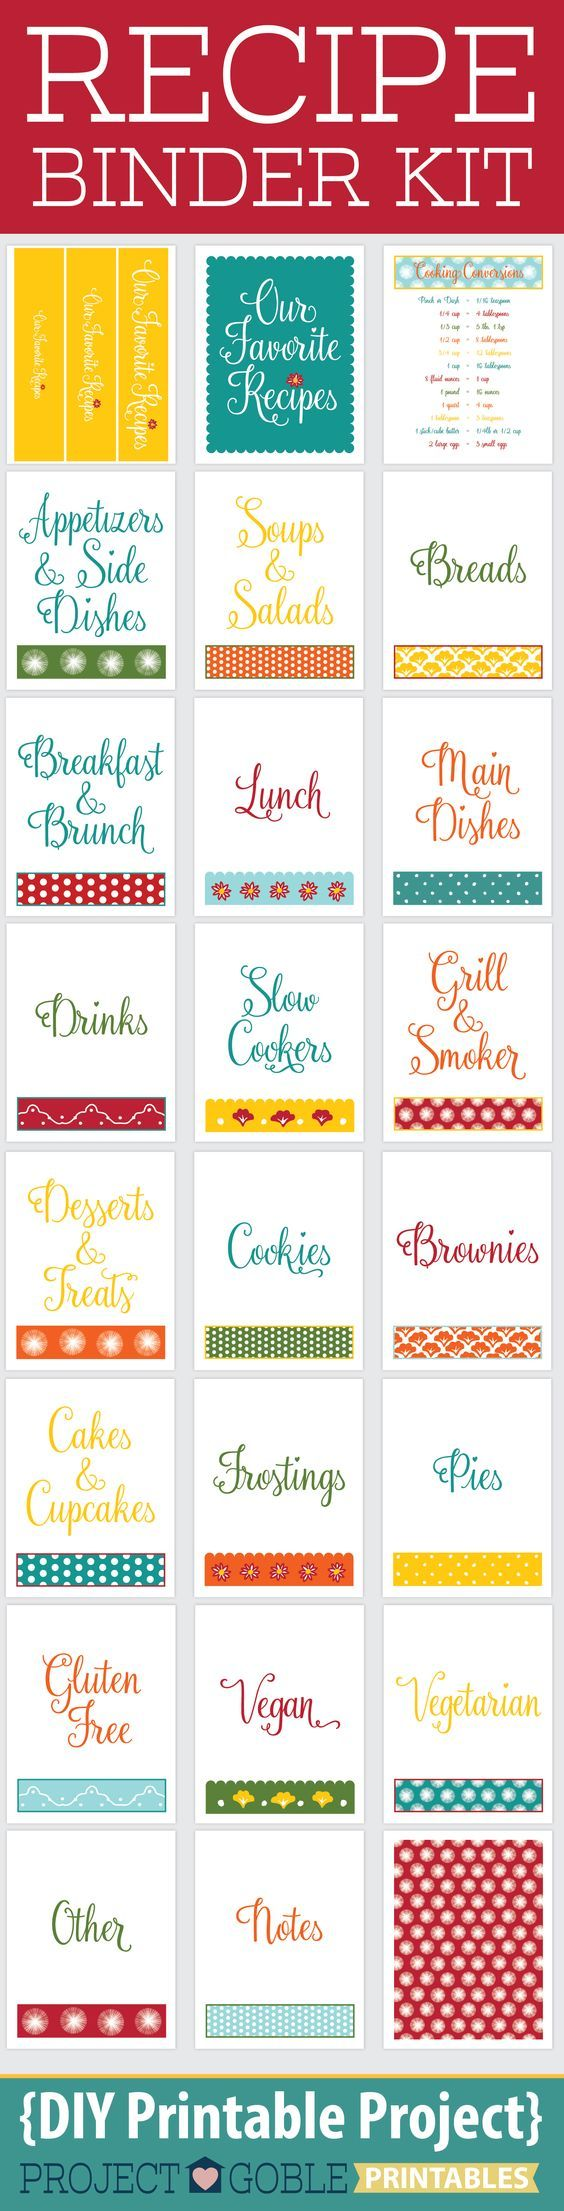 Recipe Binder DIY Printable available for Instant Download at ProjectGoble.com: